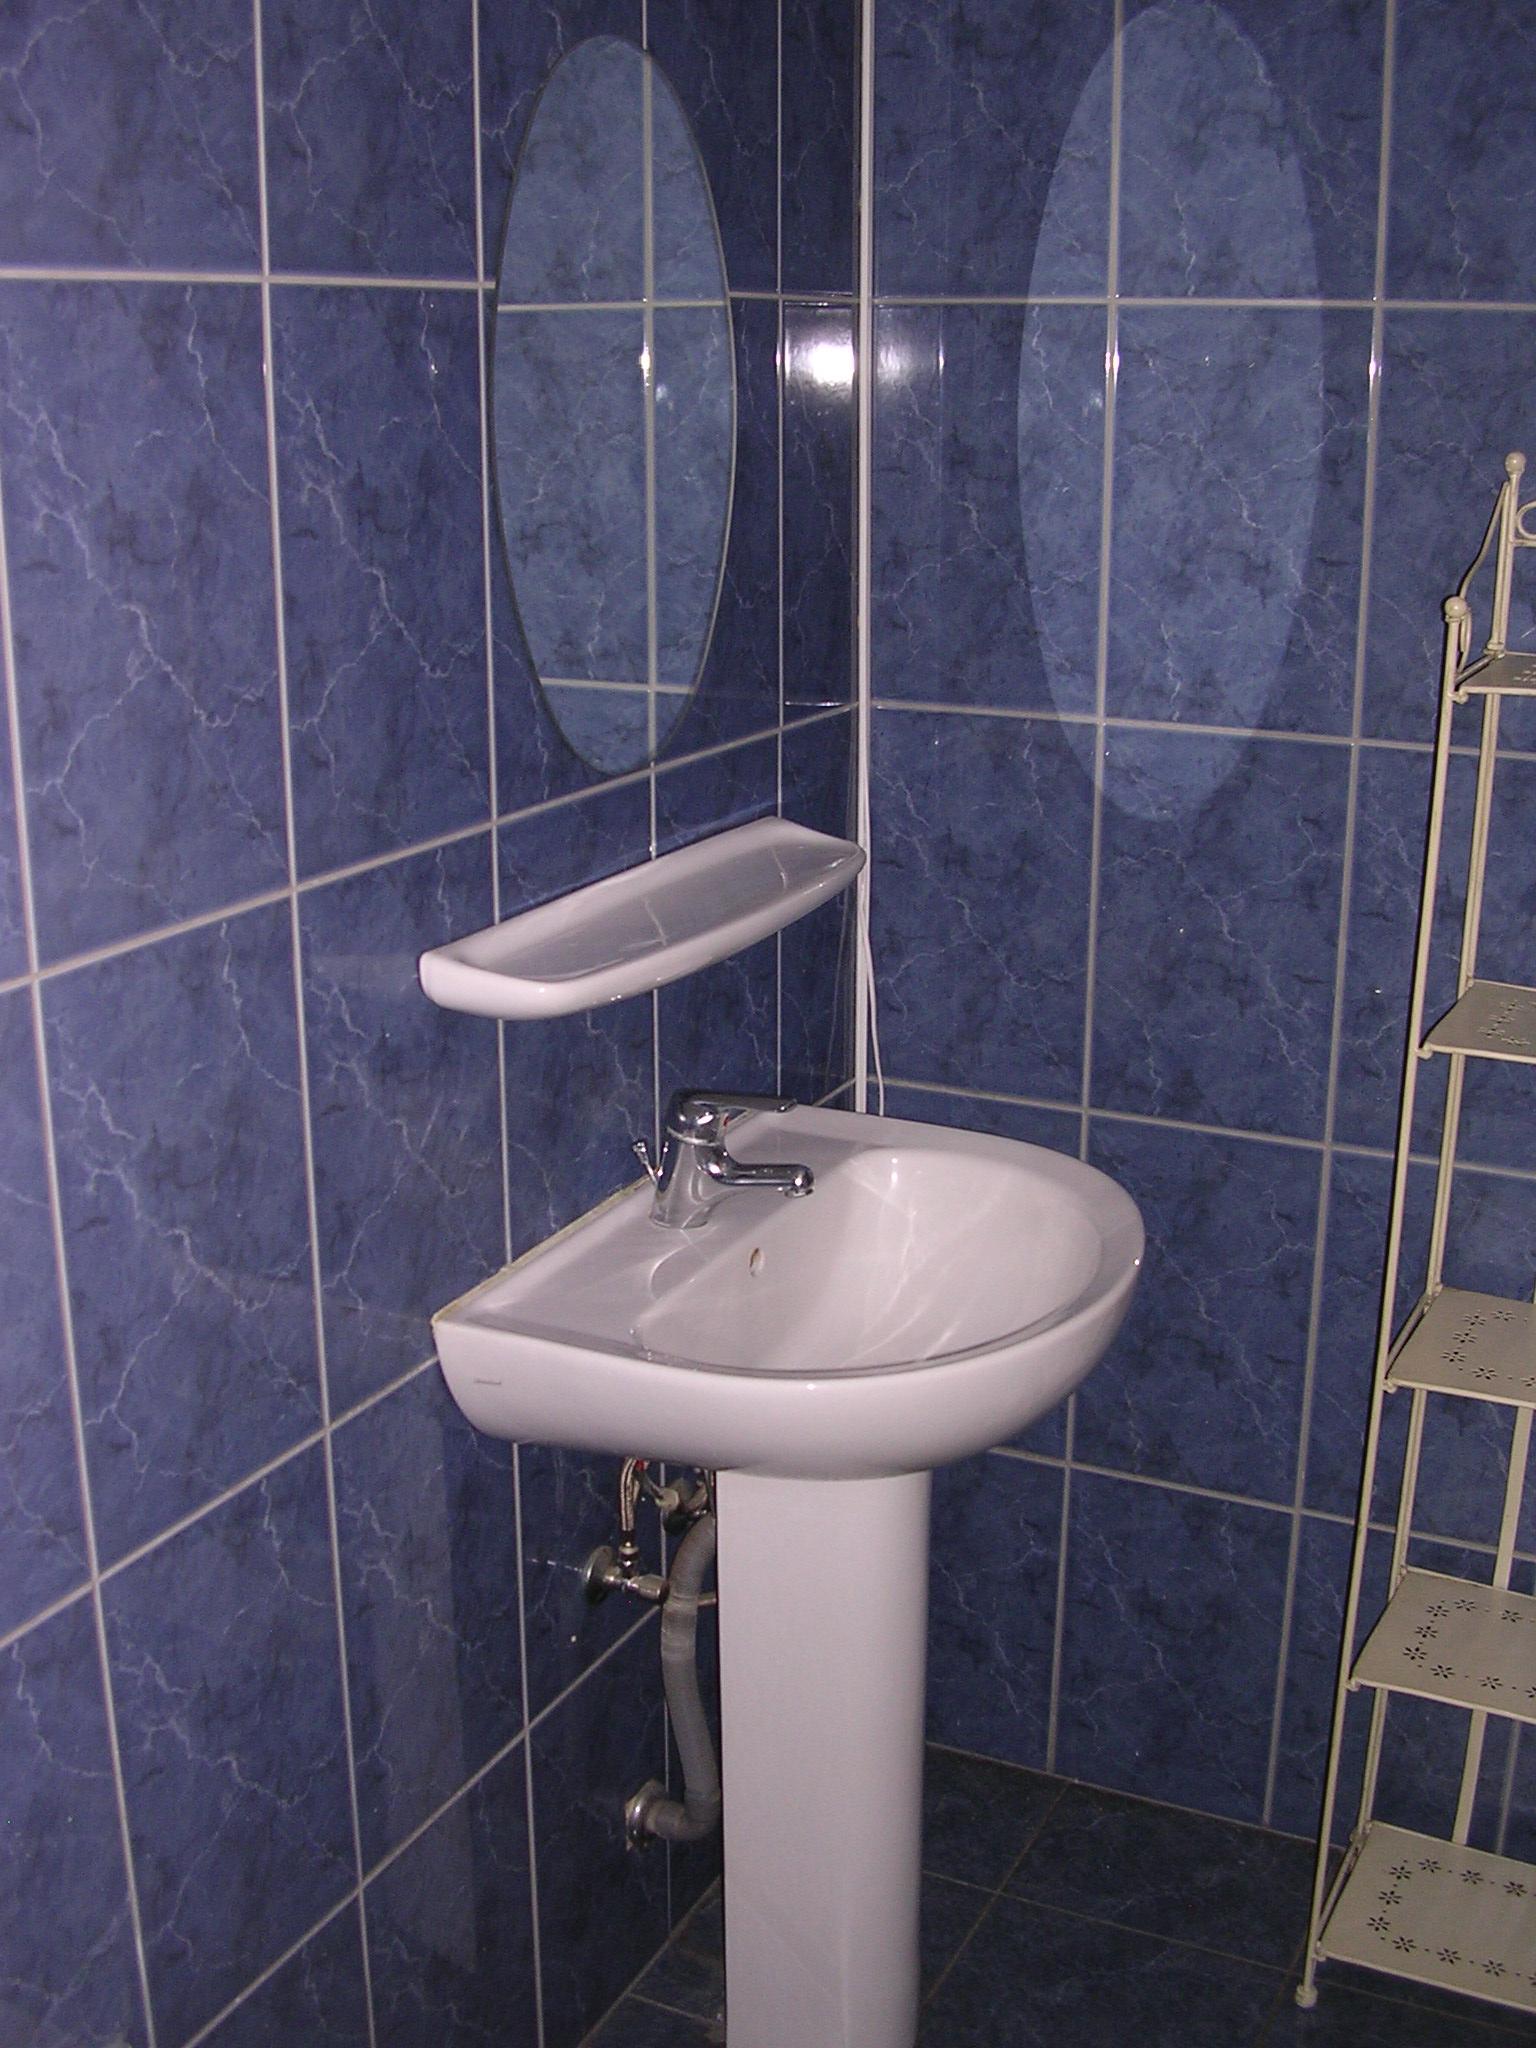 Appartement  louer – Jambes – Immo Citadelle